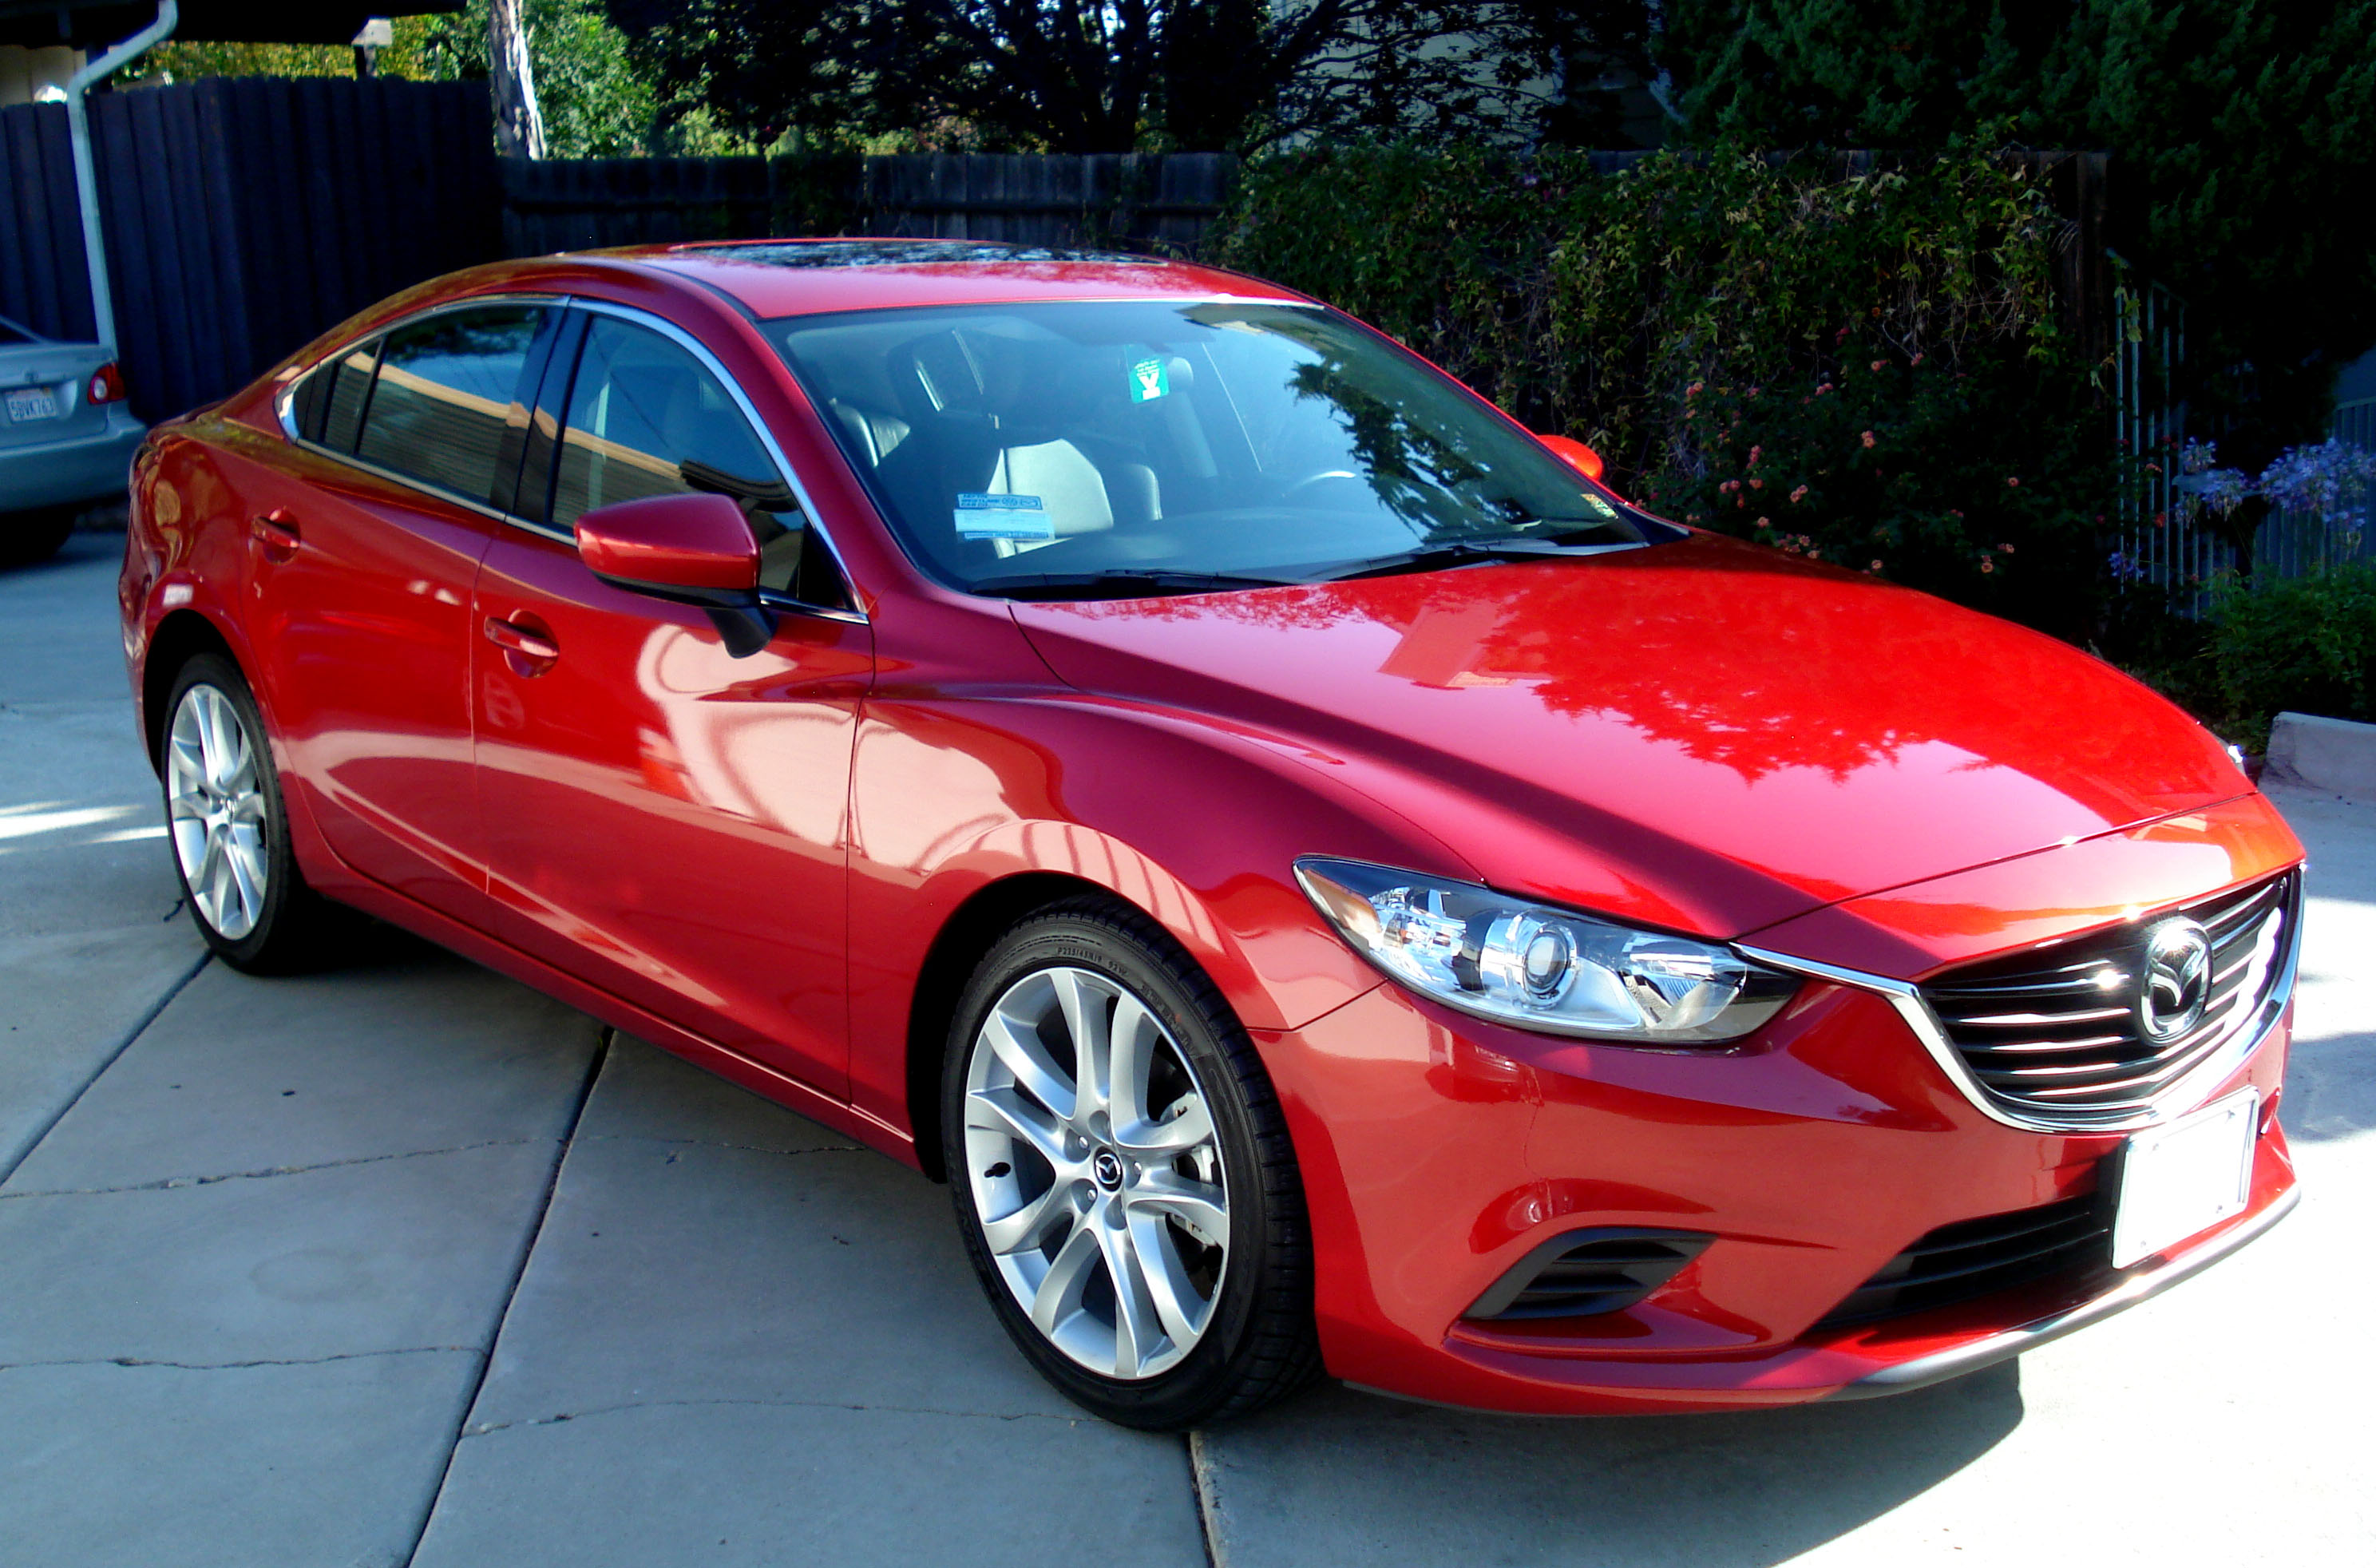 2015 mazda mazda 6 sedan pictures information and specs auto. Black Bedroom Furniture Sets. Home Design Ideas